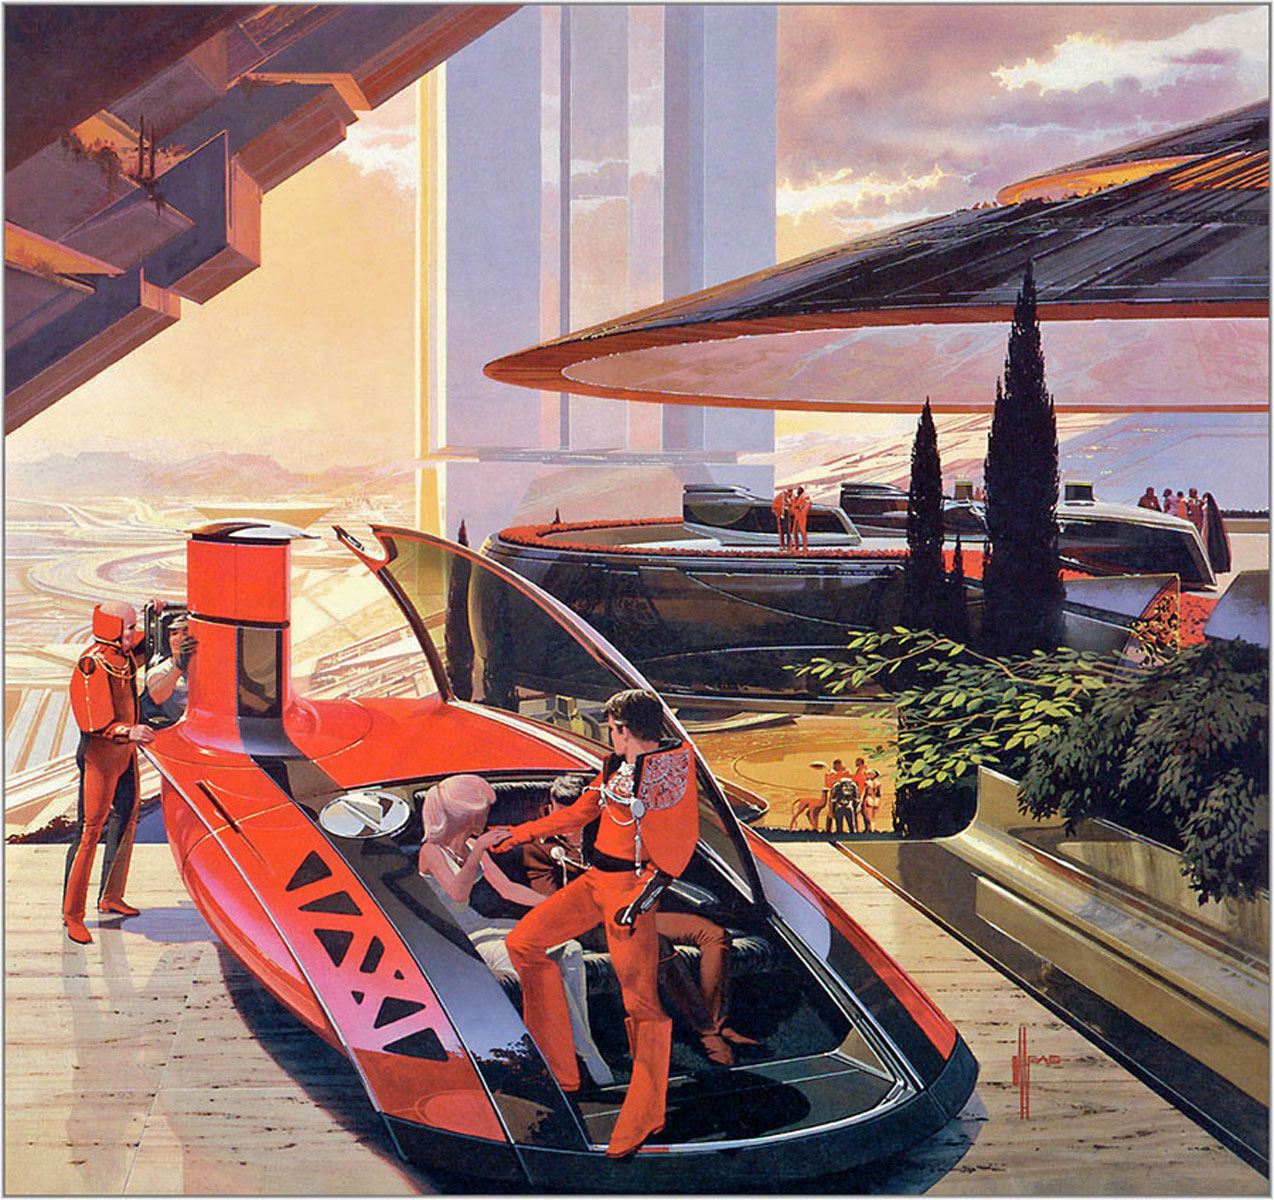 Vintage Science Fiction Wallpaper Google Search: The Blur: The Retro Future: The Art Of Syd Mead